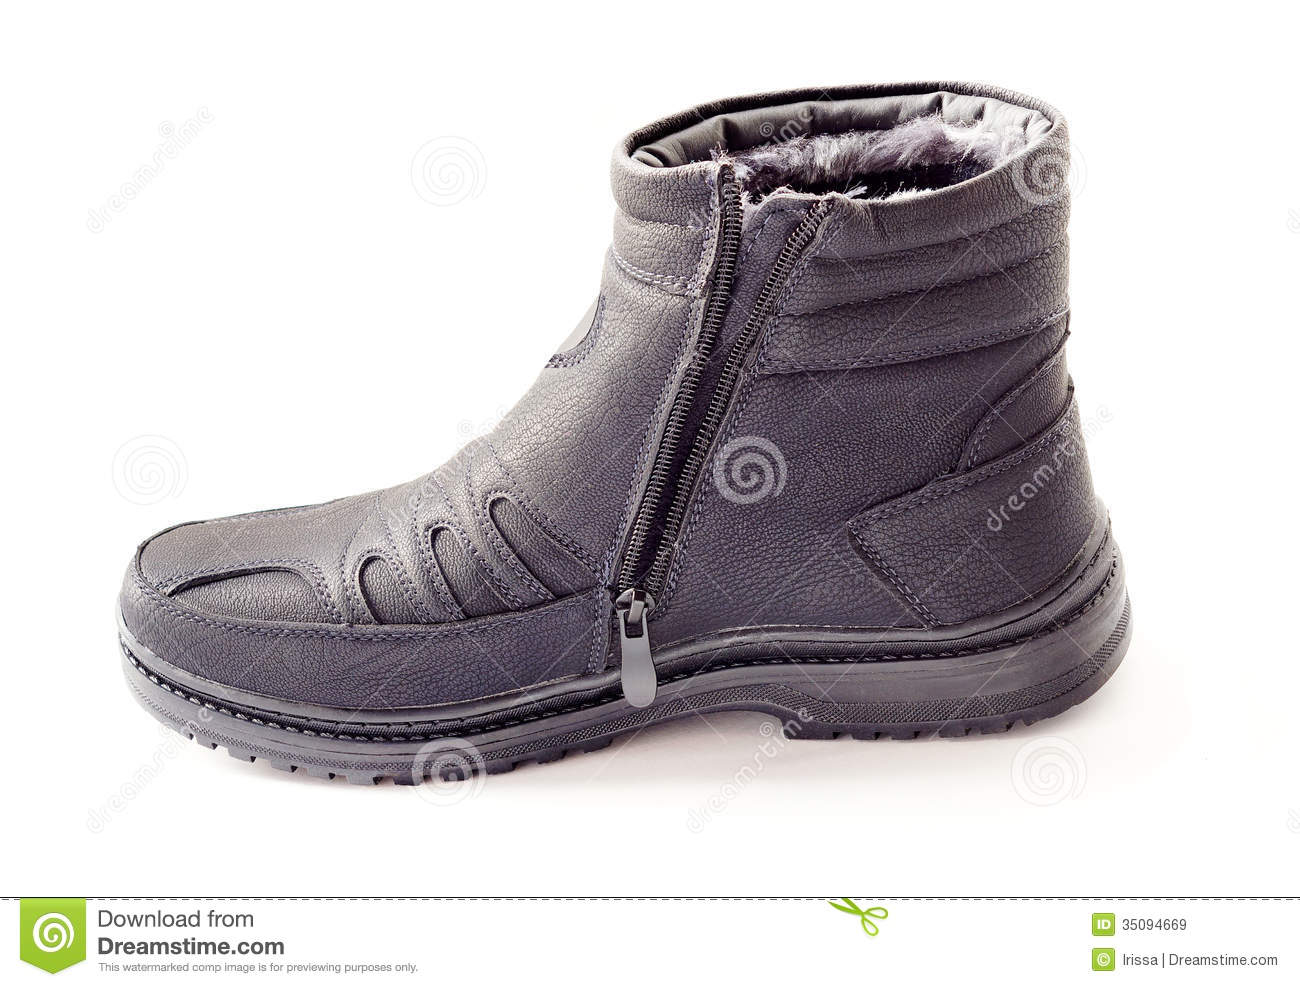 Stylish mens boots for winter